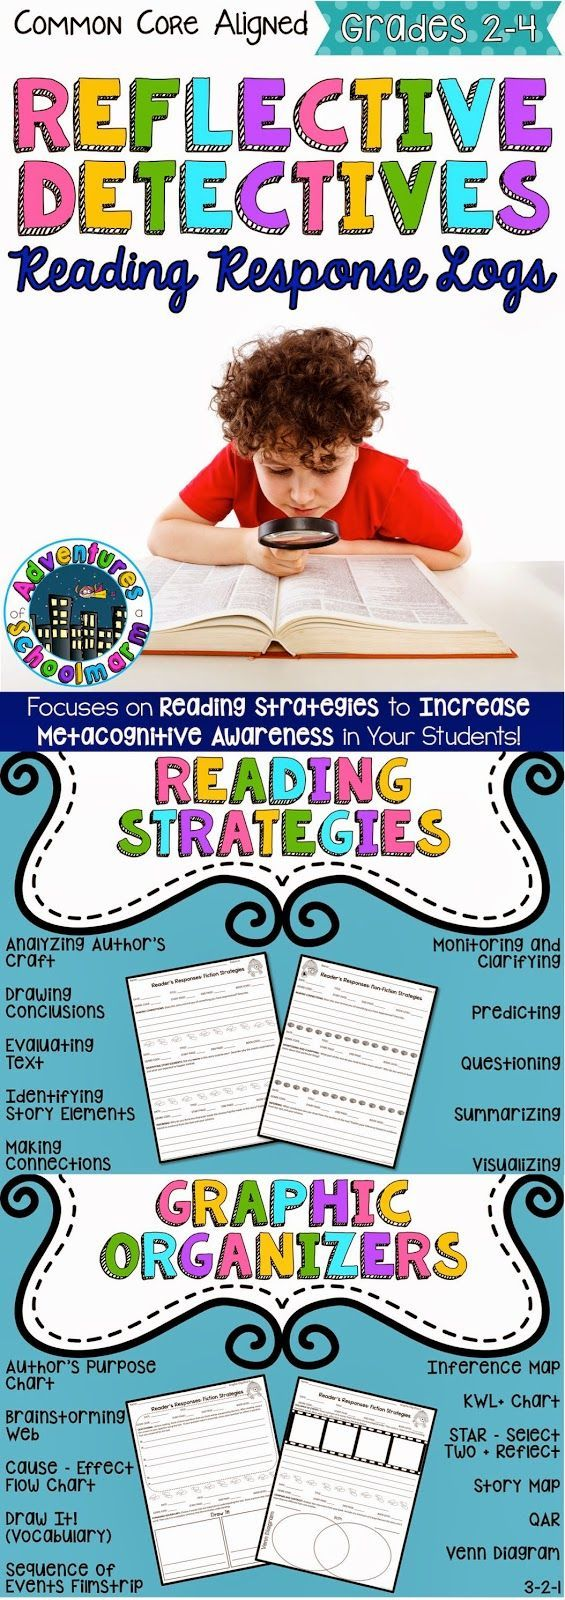 Adventures of a Schoolmarm: Reading ~ Reflective Detectives Book Logs    Increase metacognitive awareness through research-based reading strategies, graphic organizers, and student choice!